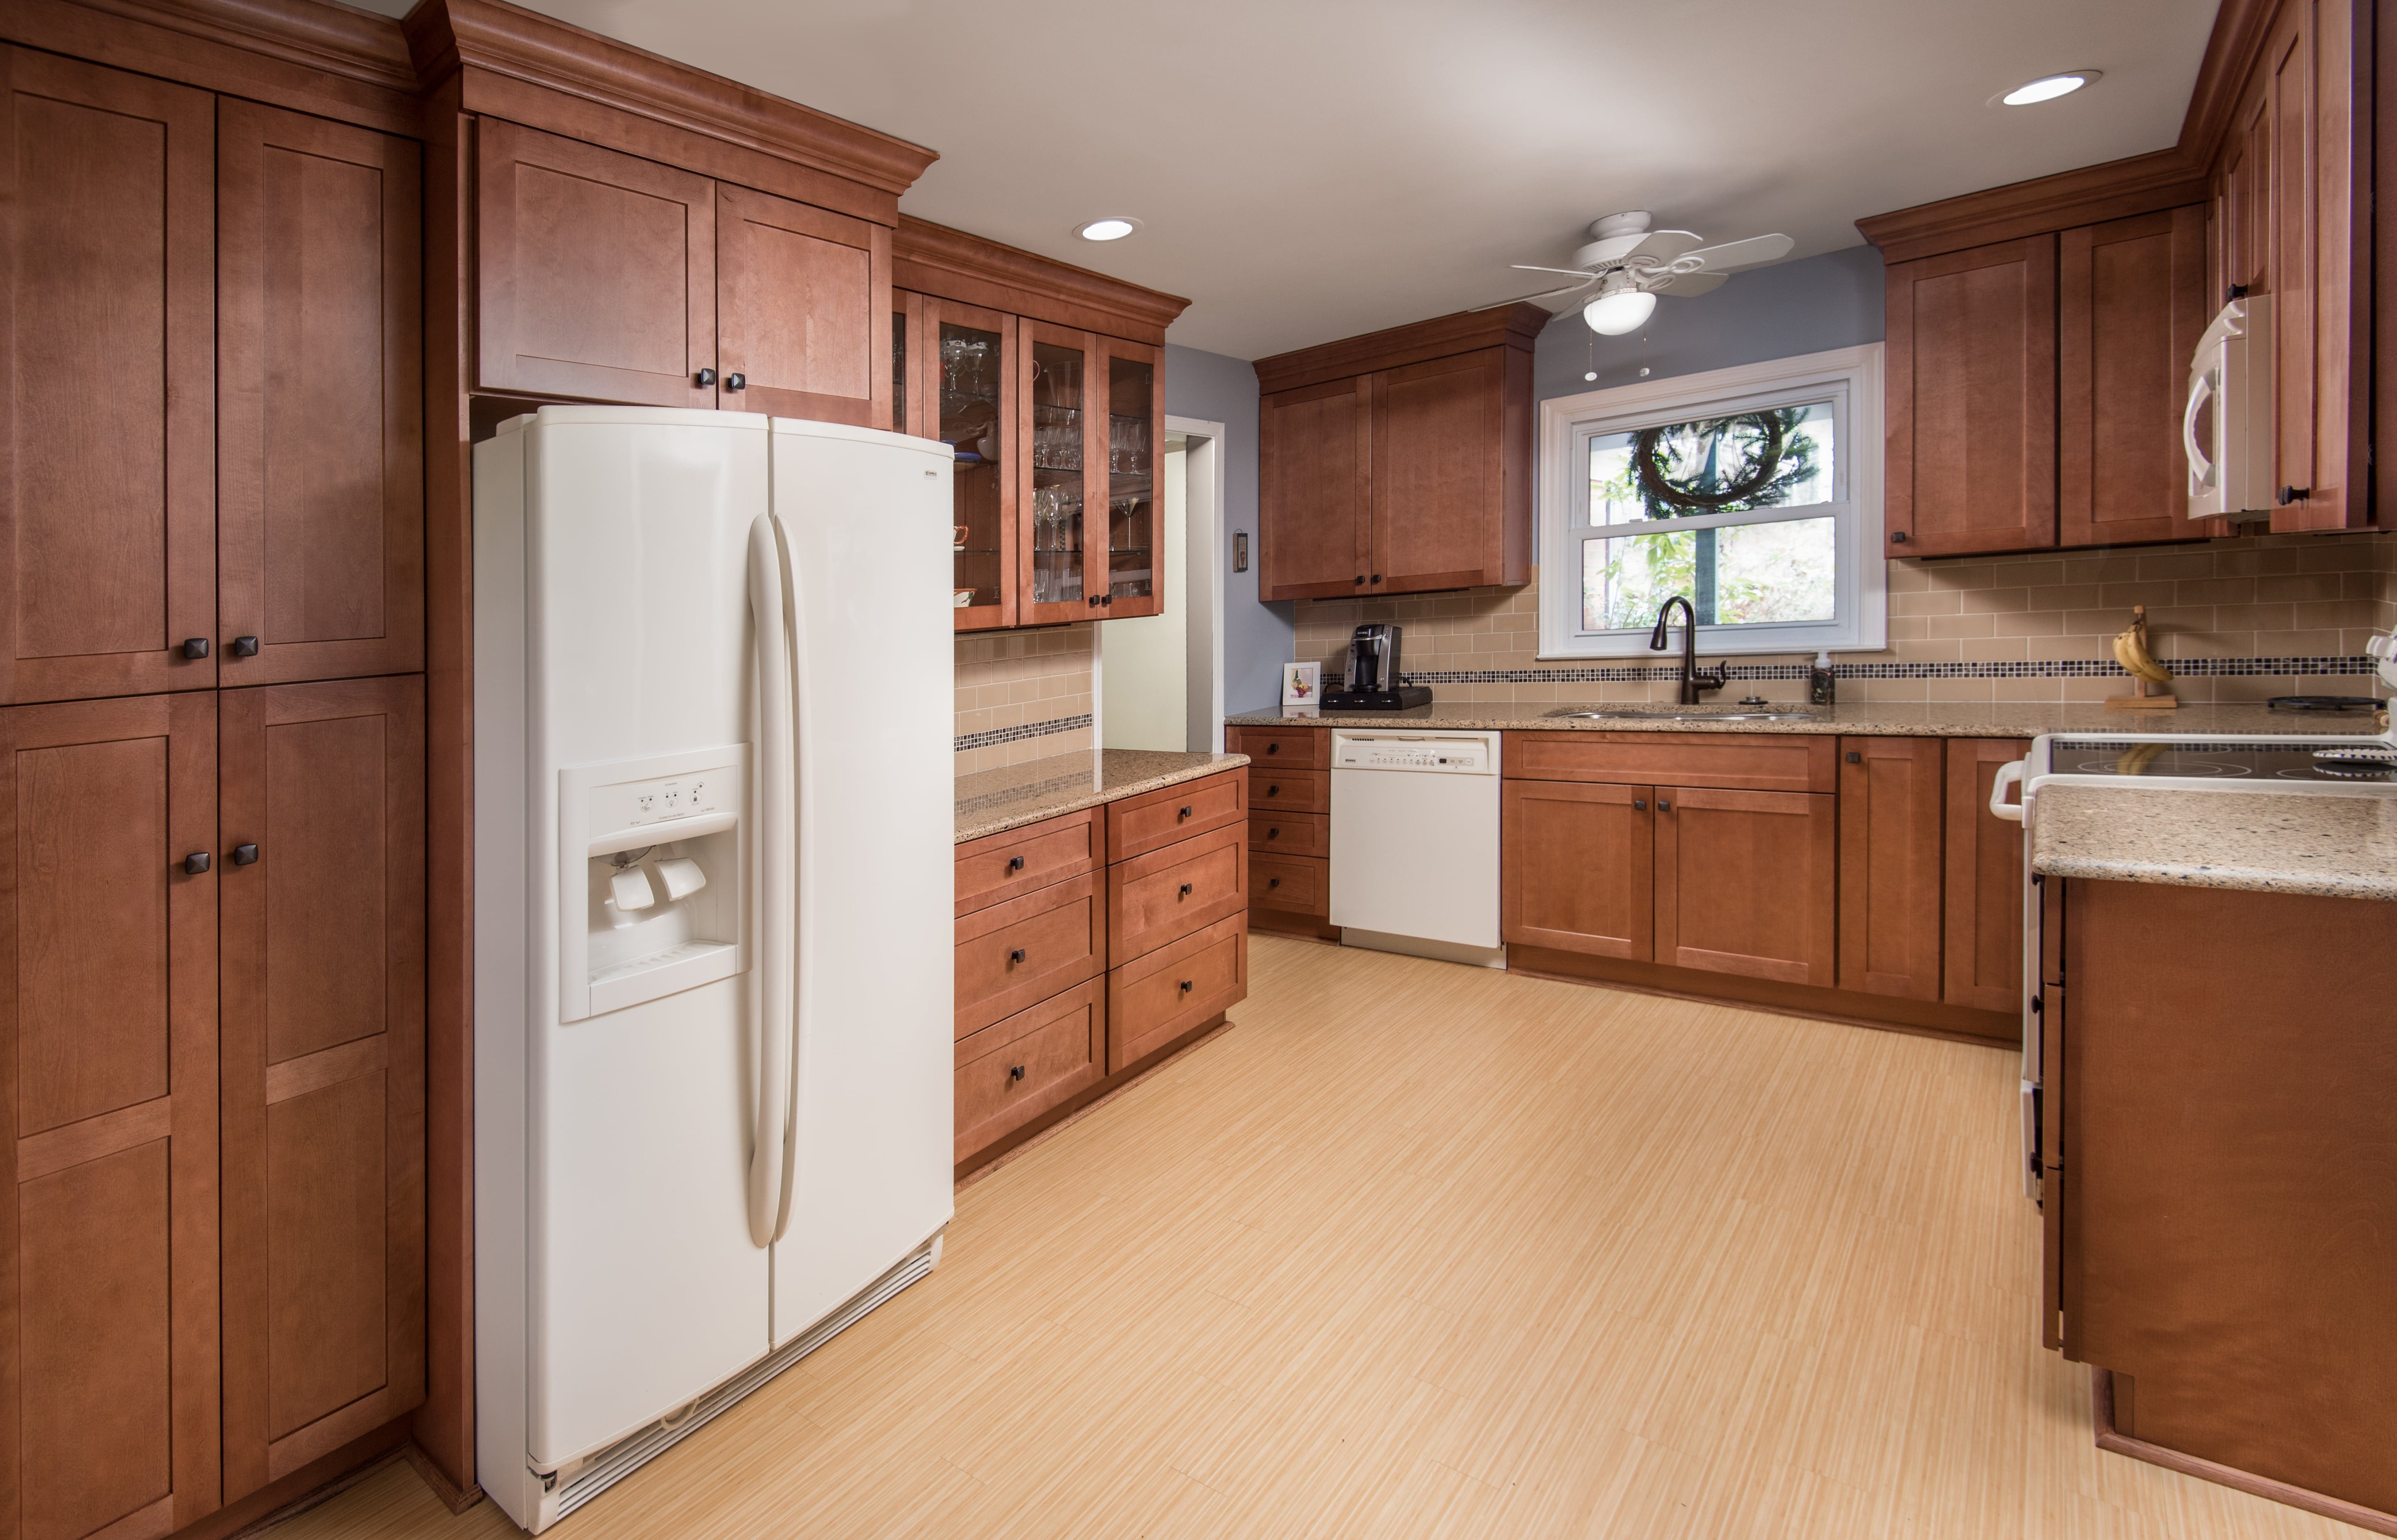 foothill mls laffey fine real jamaica ave kitchen ny cupboard estate